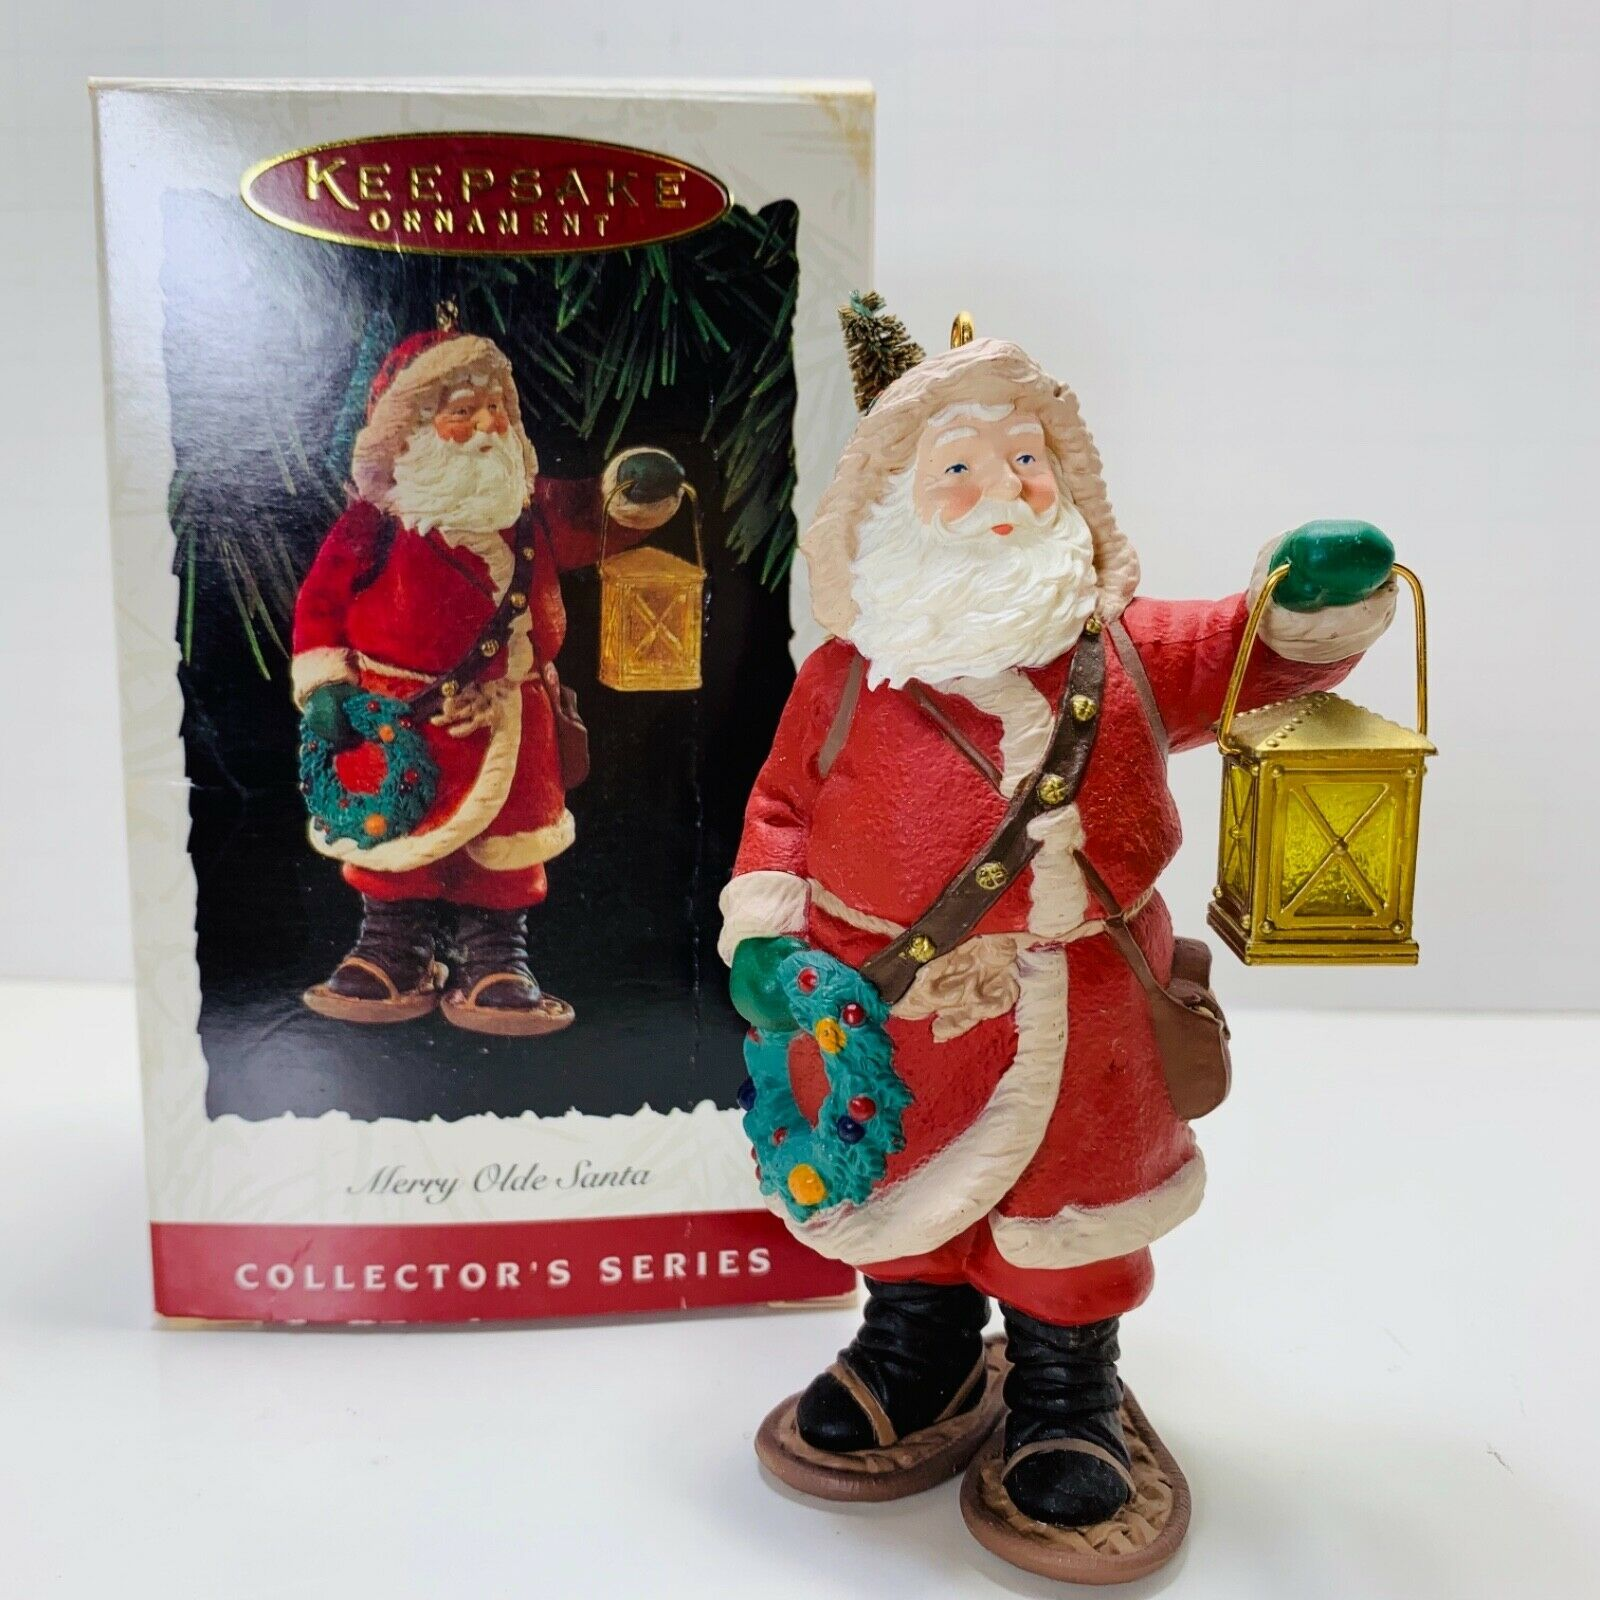 Primary image for Hallmark Keepsake Ornament Merry Olde Santa 1994